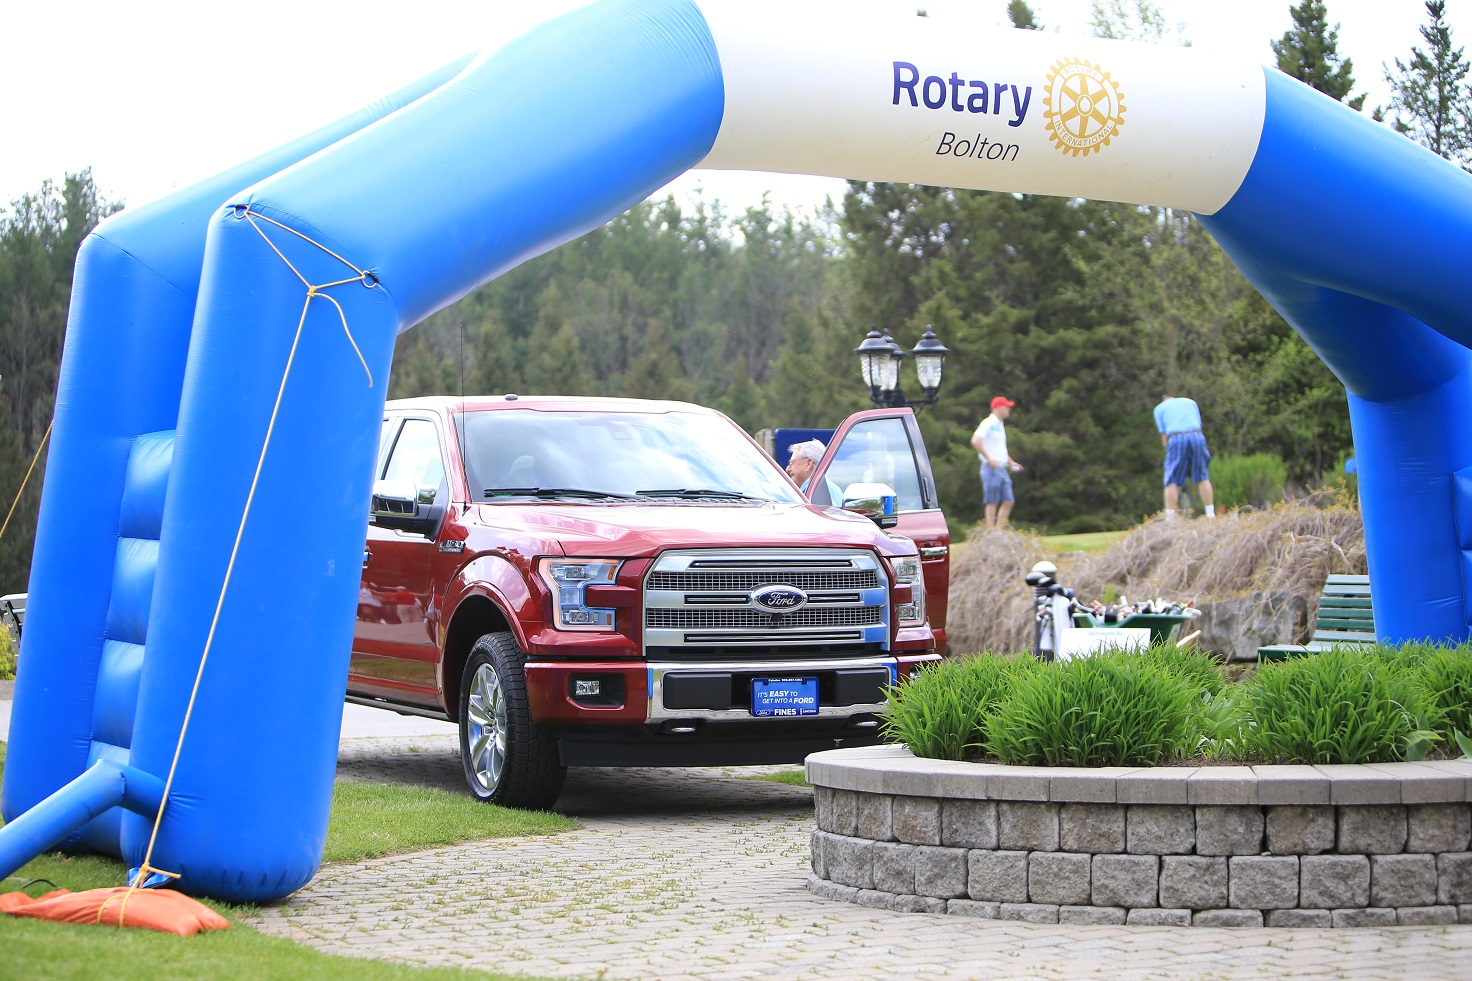 2019 Bolton Rotary Early Bird Golf Classic gallery image #19